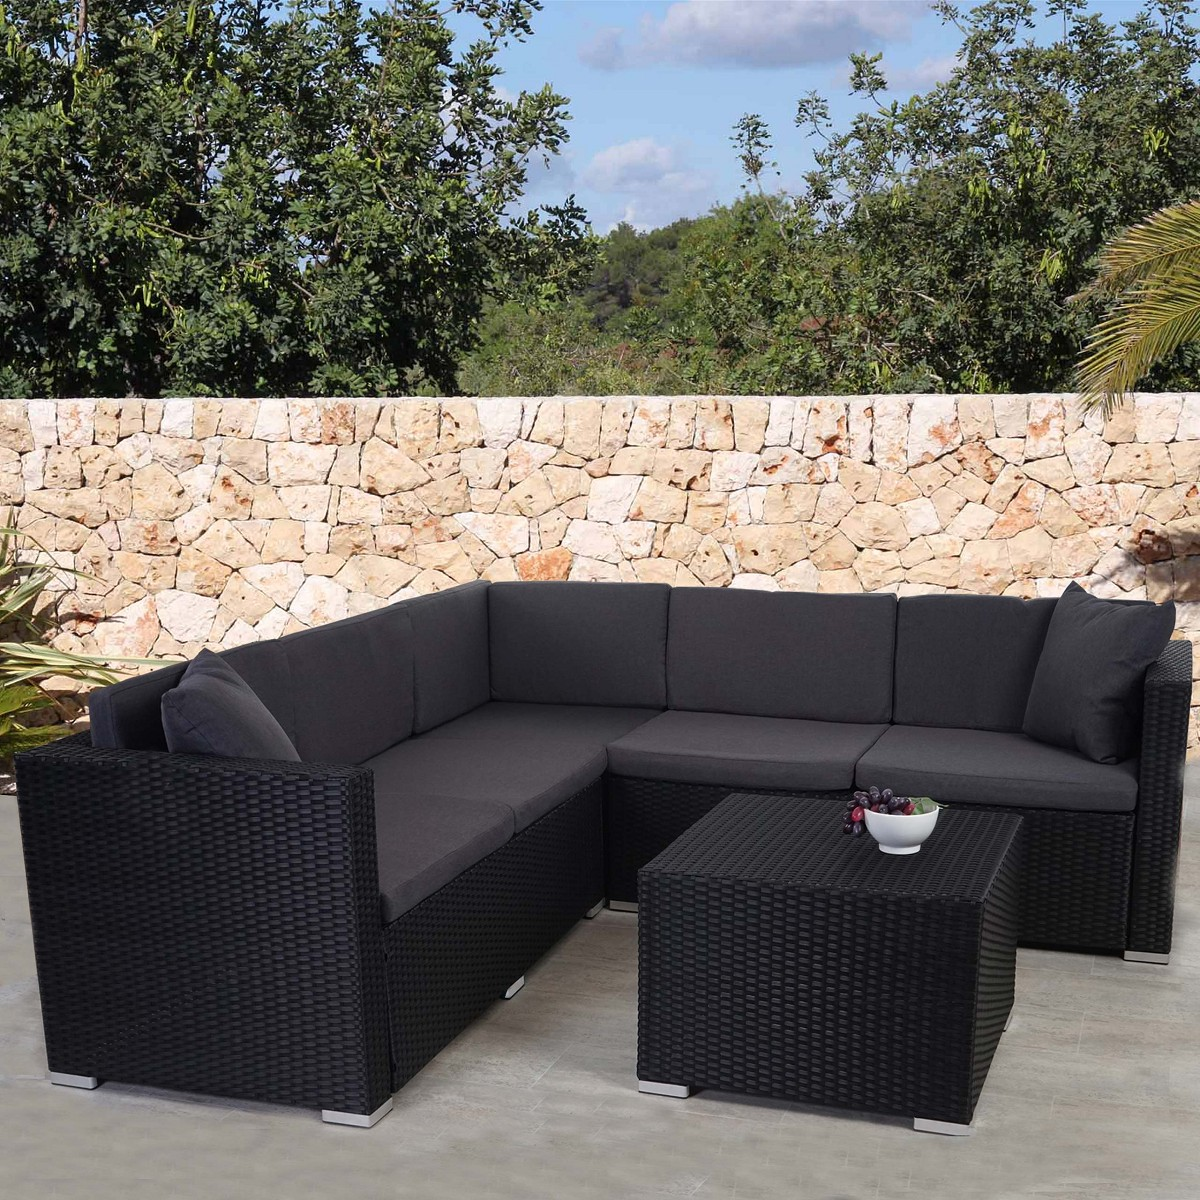 poly rattan rom basic sitzgruppe lounge set stahl anthrazit. Black Bedroom Furniture Sets. Home Design Ideas